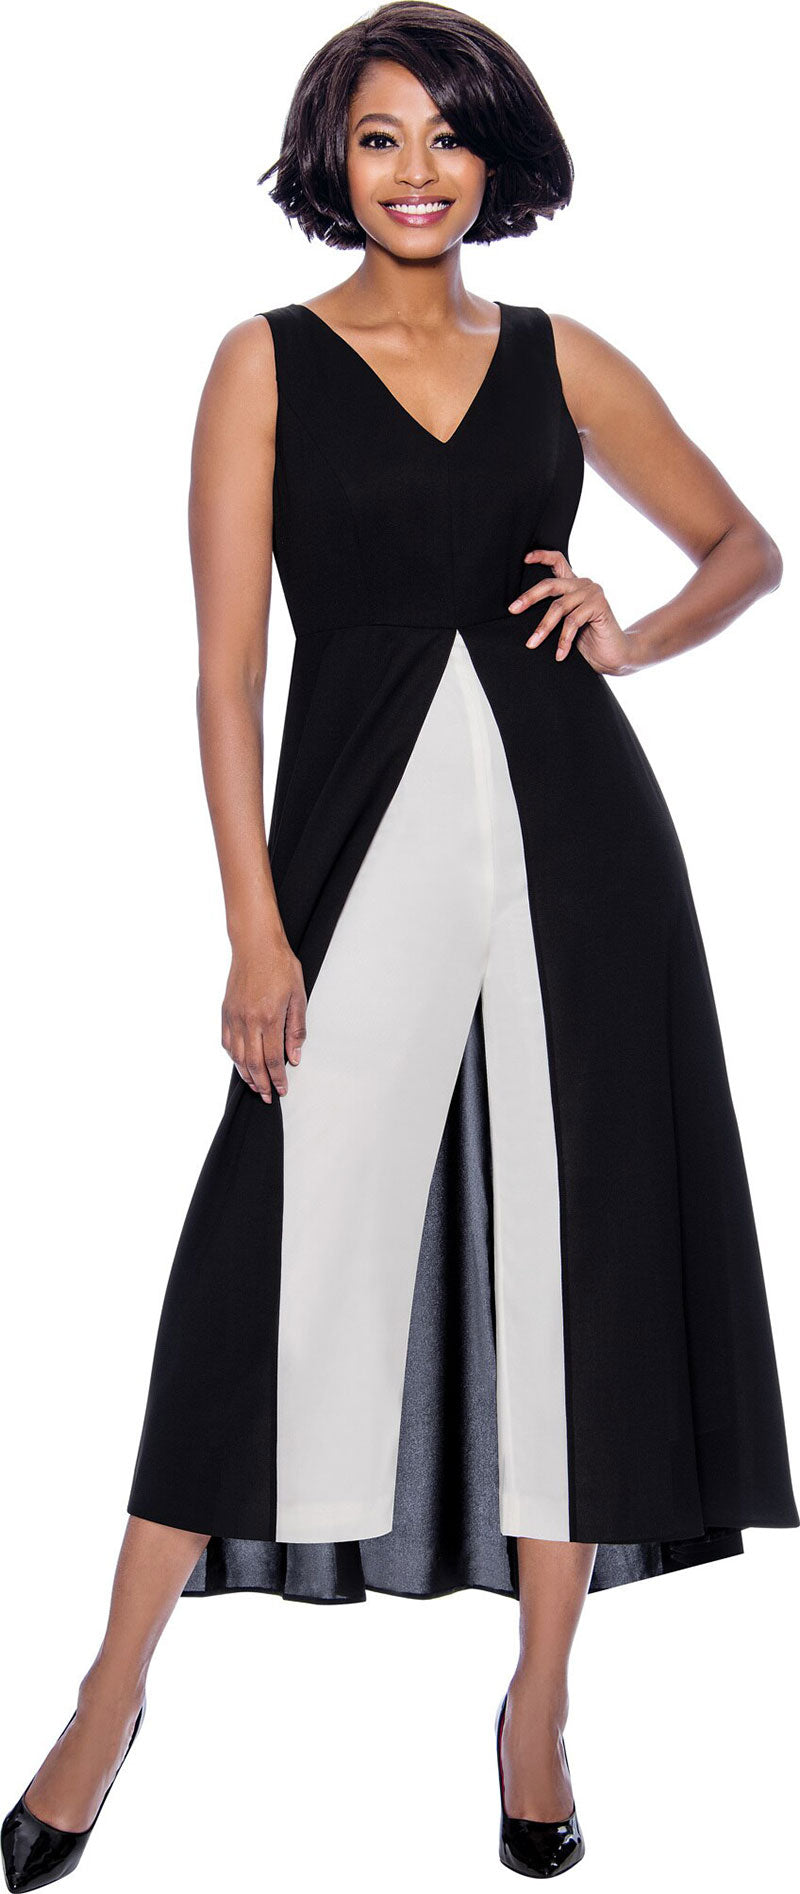 Terramina Jump Suit 7818 - Church Suits For Less